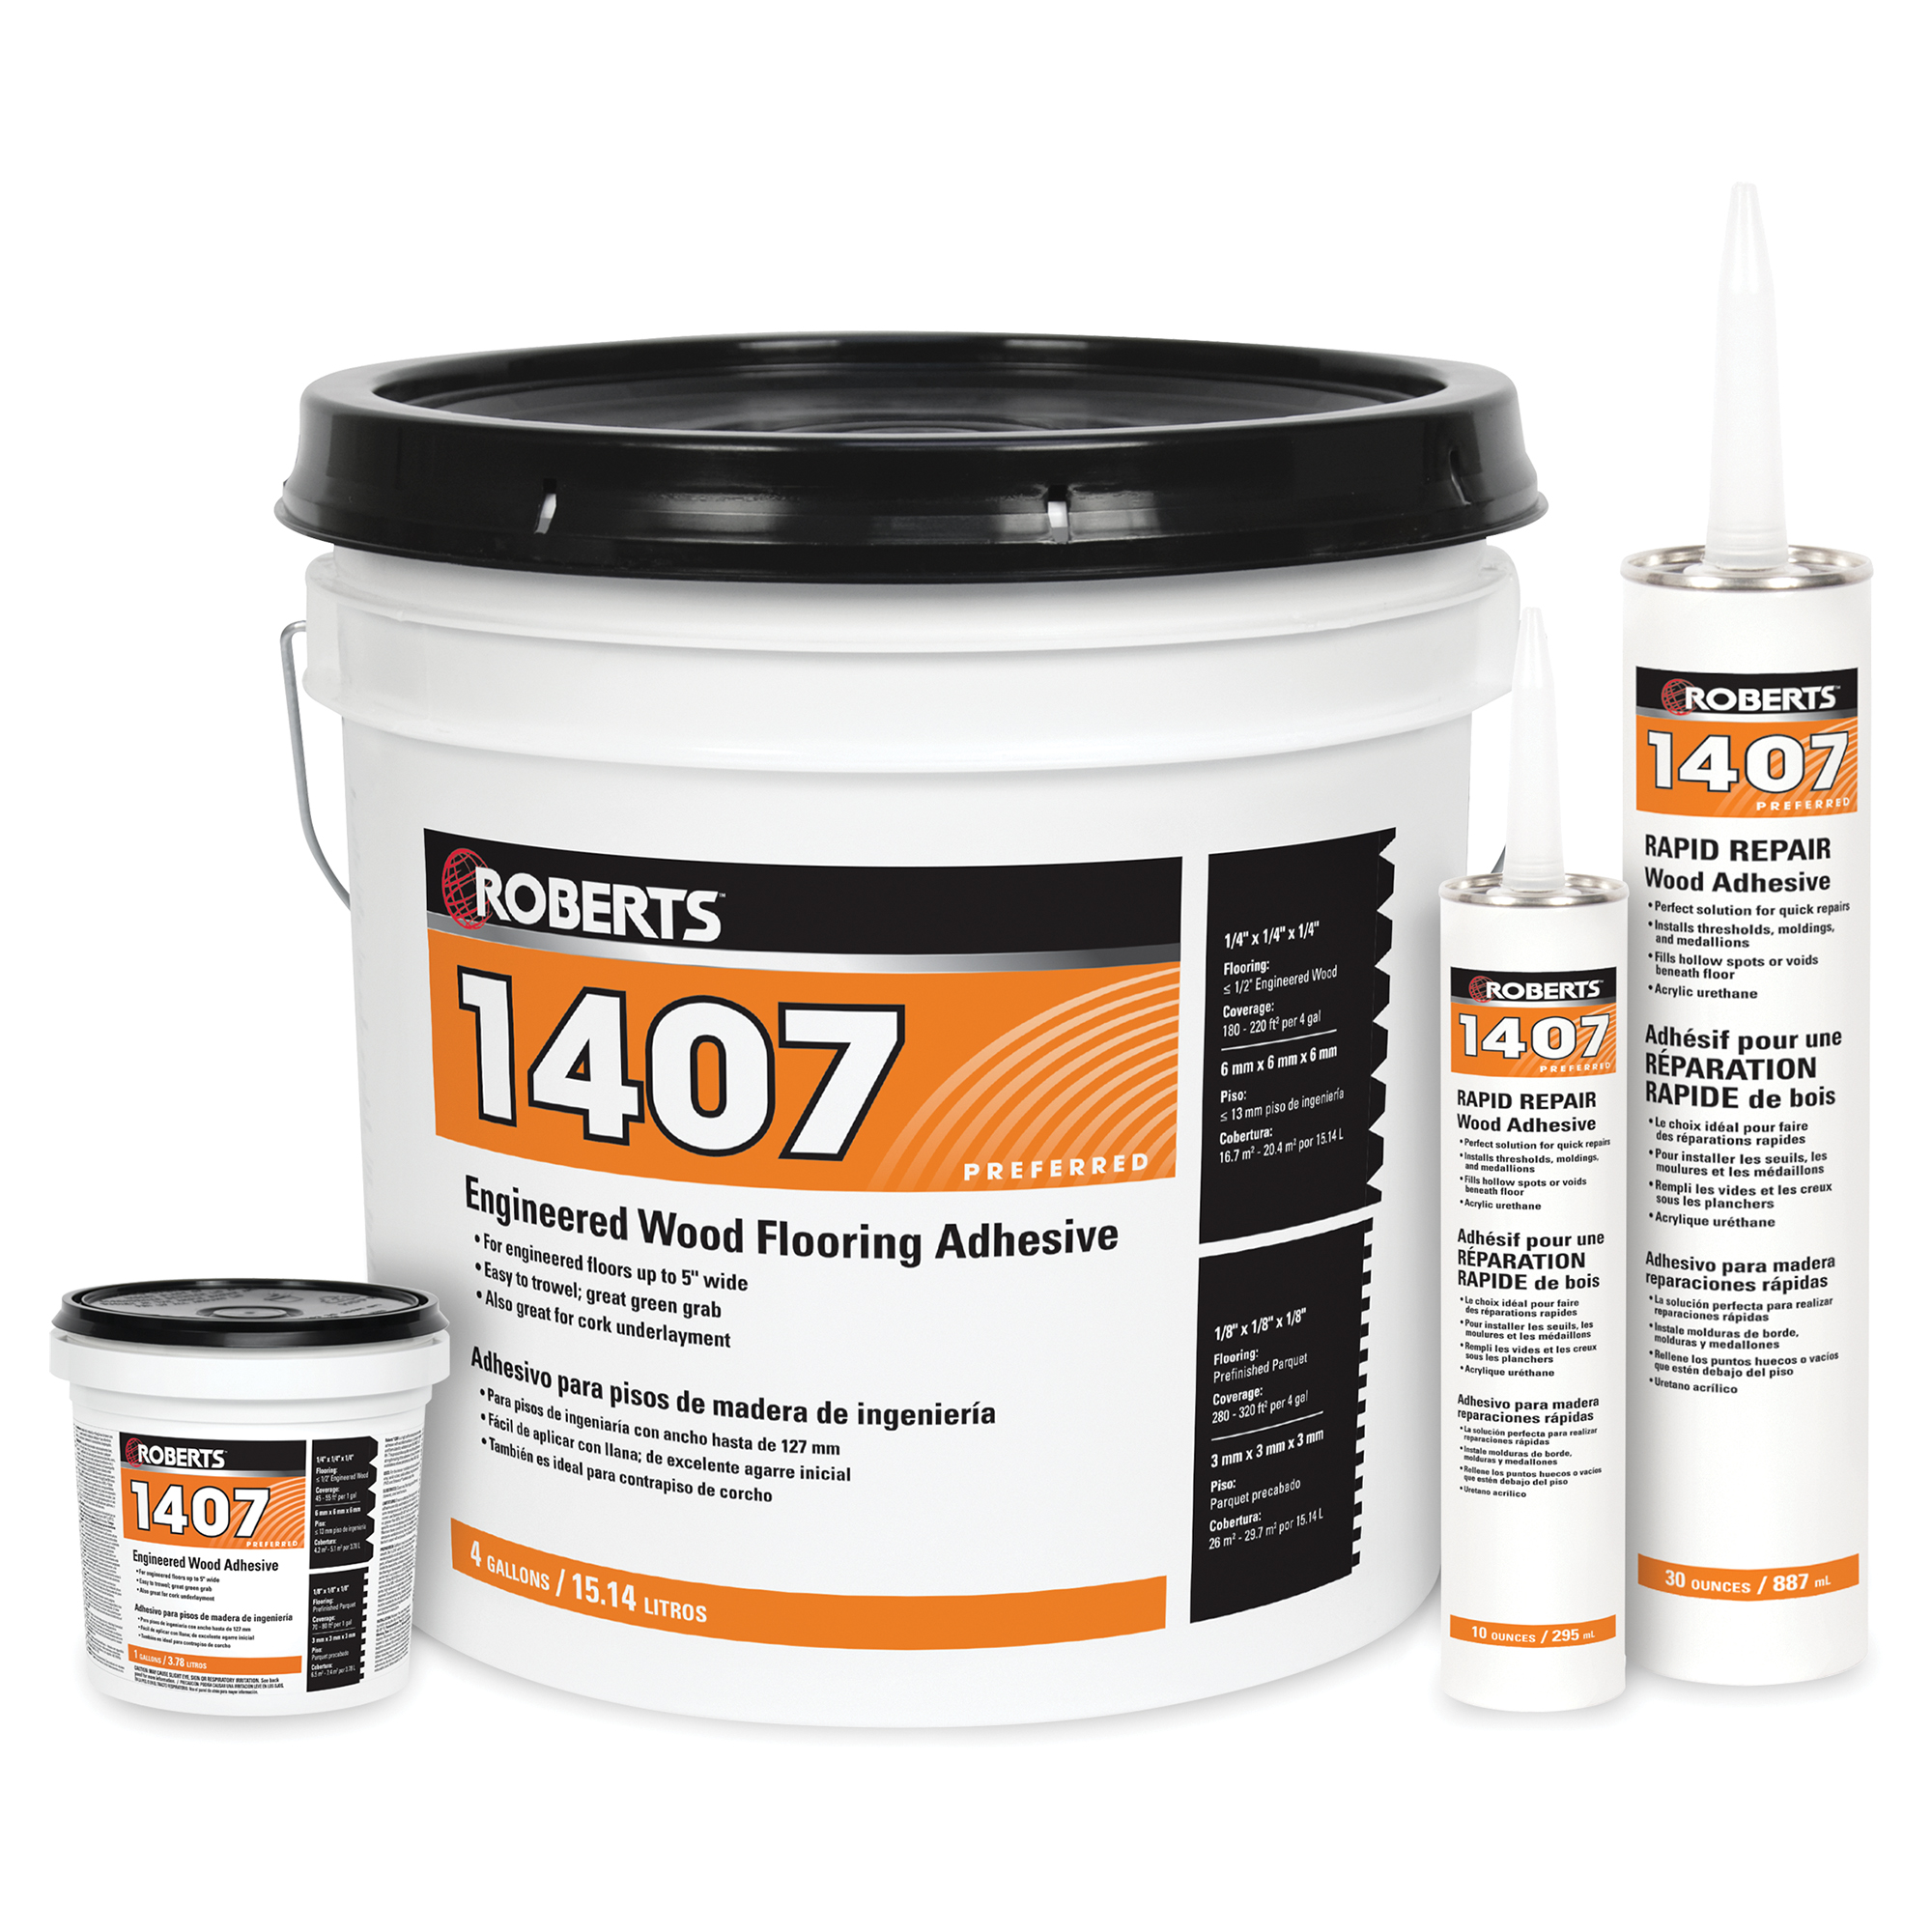 Engineered Wood Flooring Adhesive